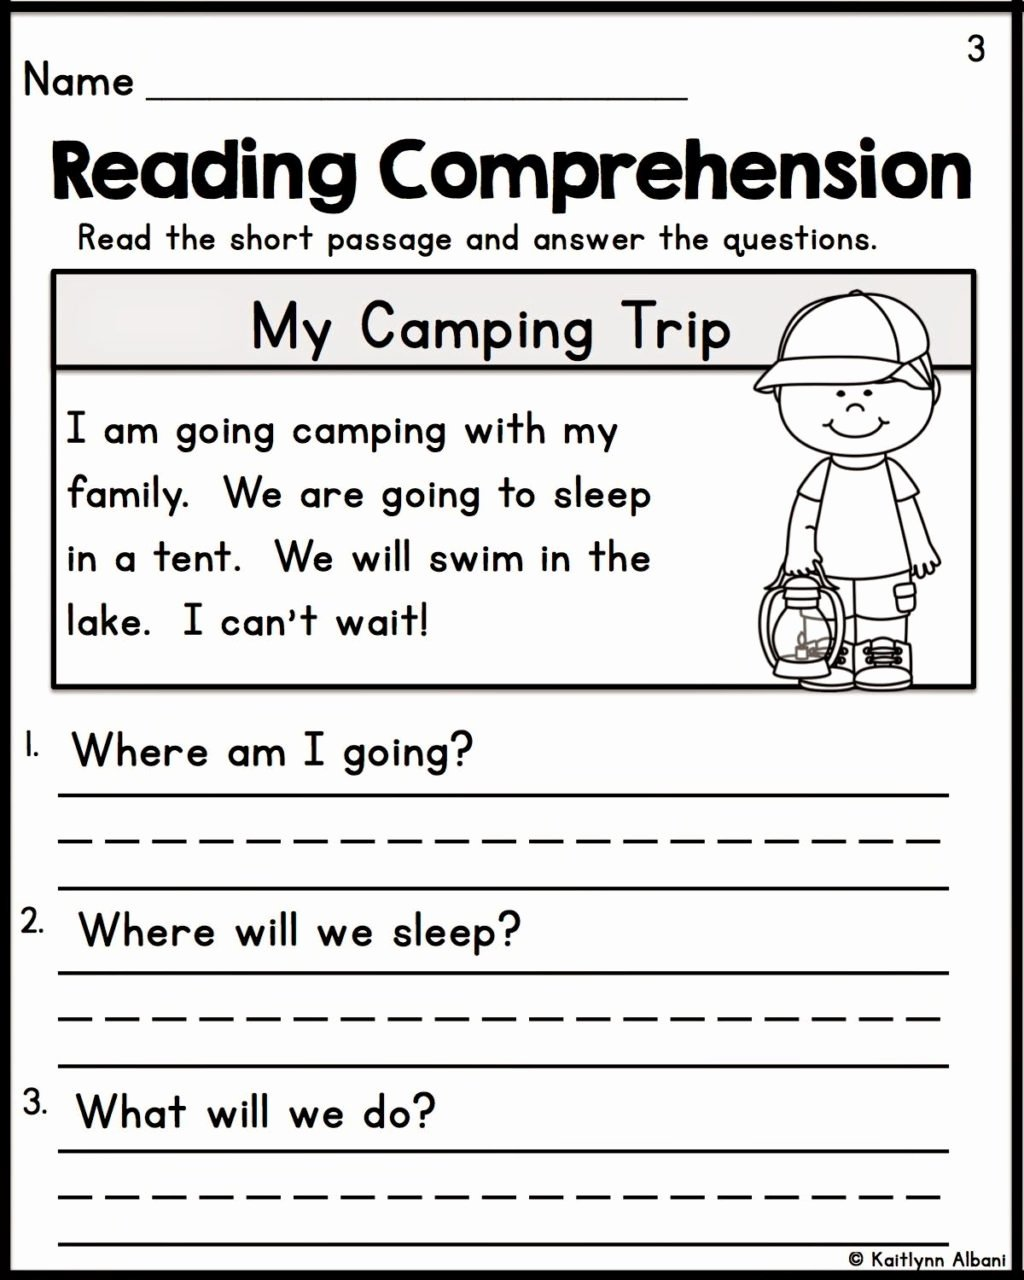 Comprehension Worksheets for Preschoolers Lovely Worksheet Worksheet Free Printablerst Grade Reading